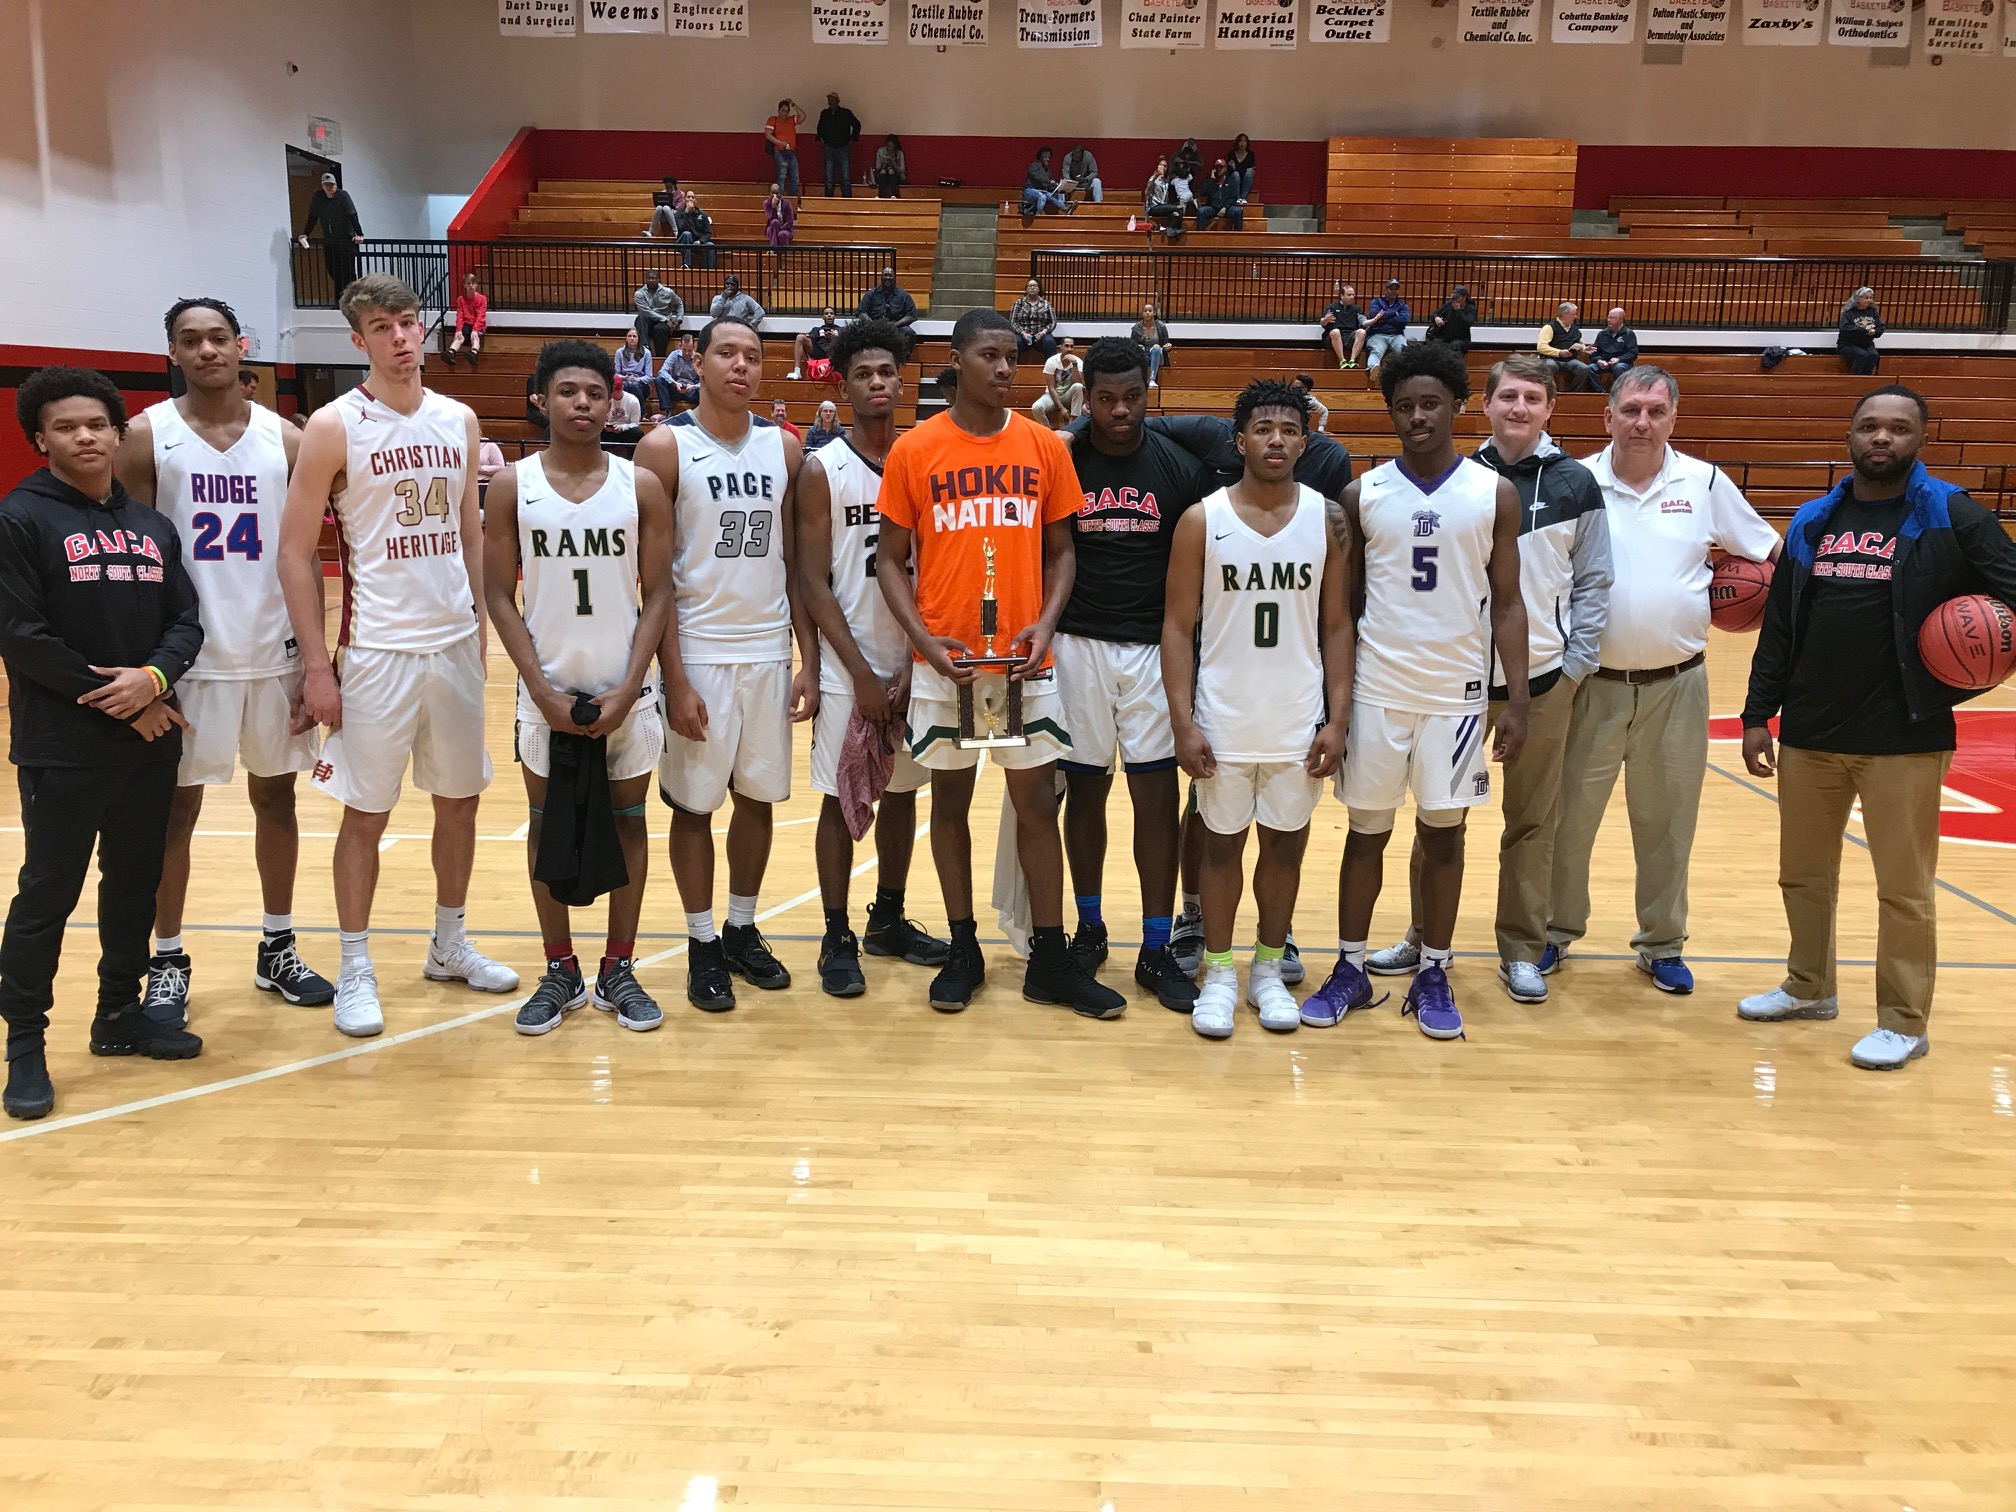 2018 GACA Senior Boys North All-Star Team